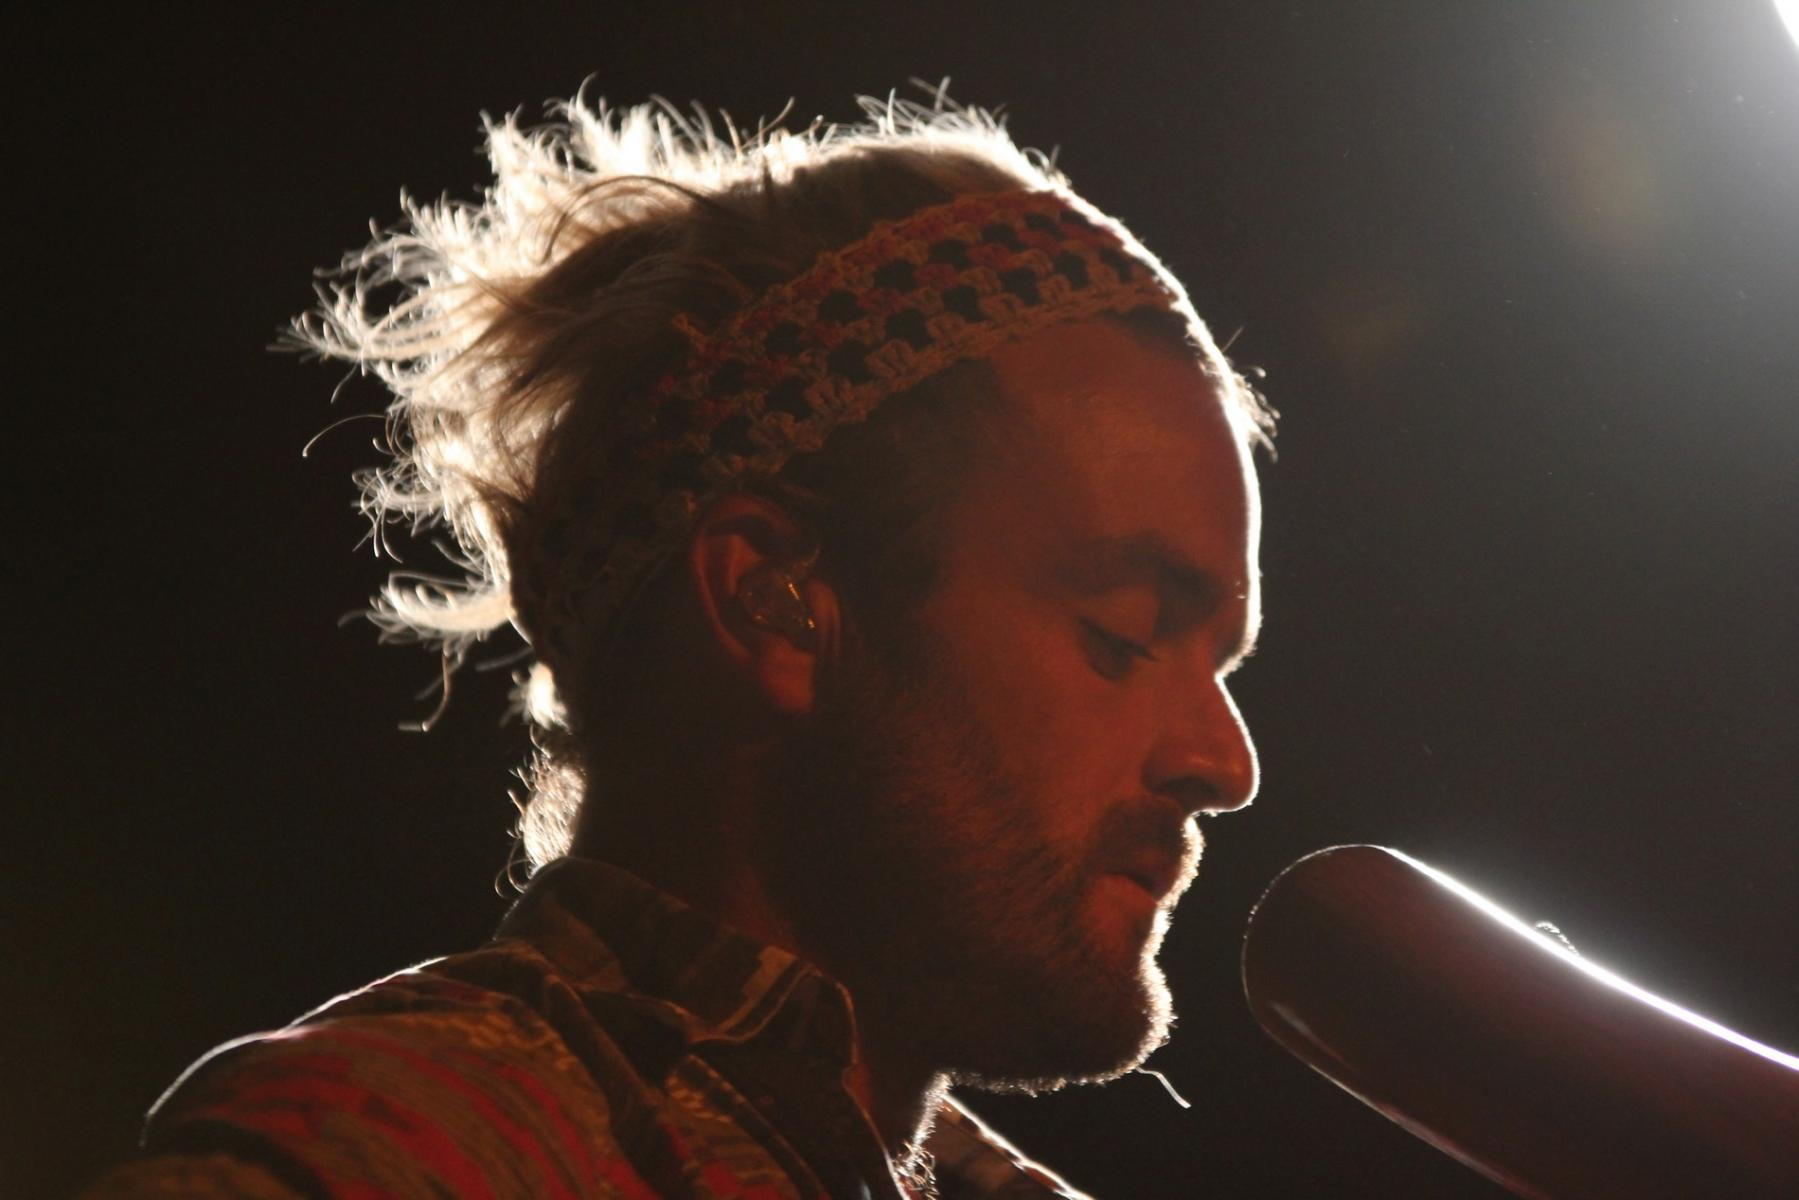 Xavier Rudd - Kings Arms - Apr 2012